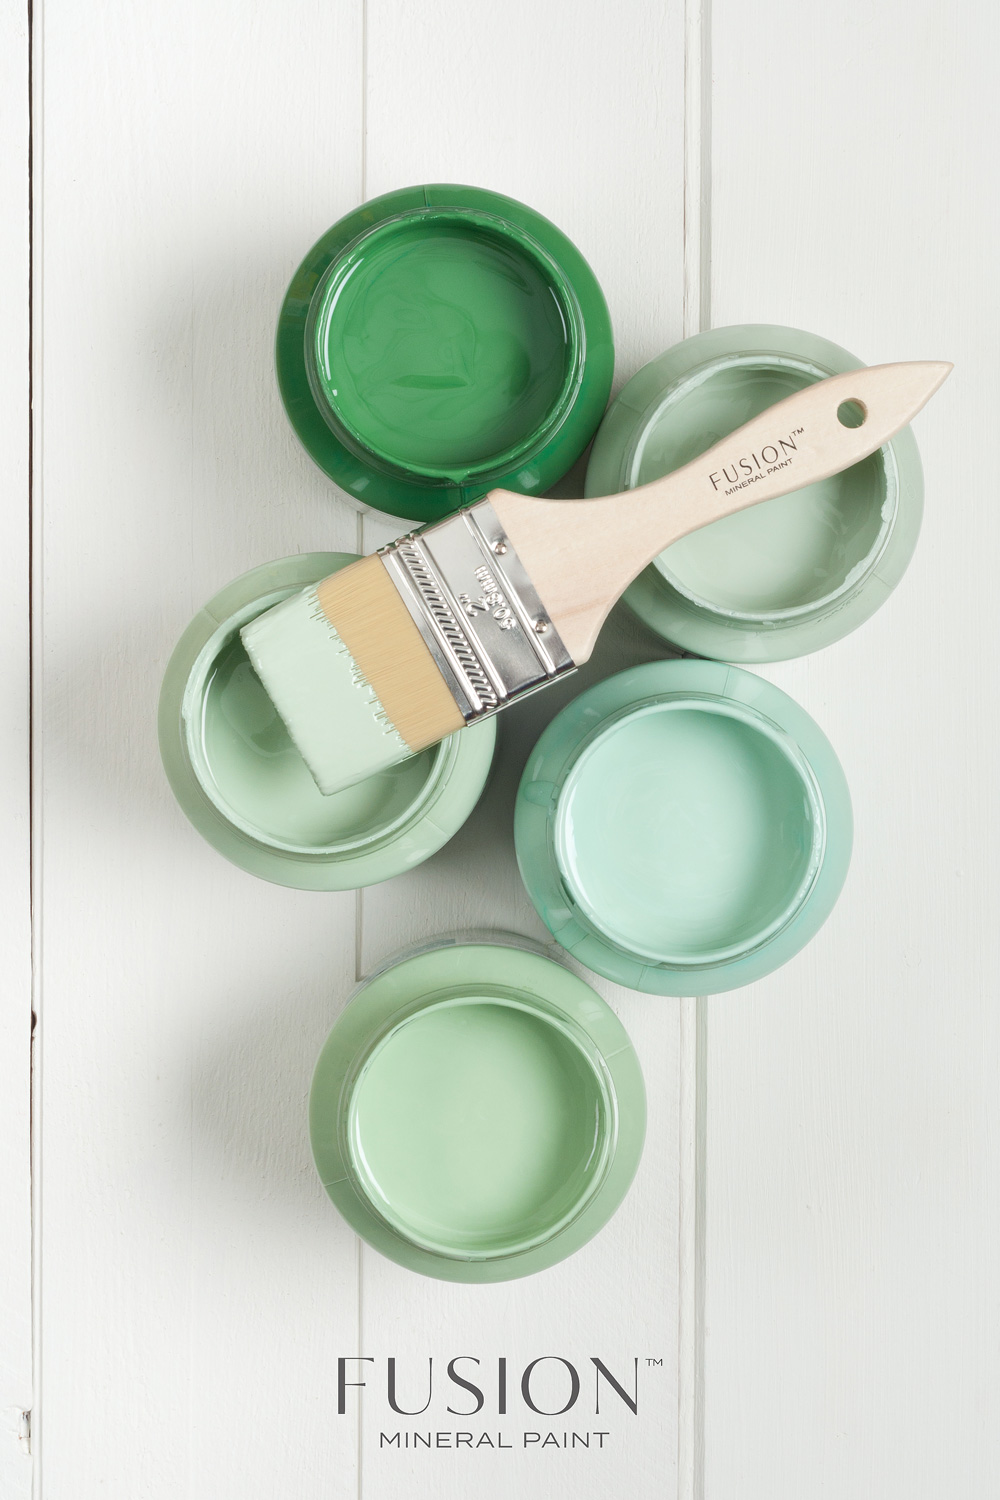 Shades of green! Fusion Mineral Paint in the colours Park Bench, Inglenook, Brook, Laurentien and Lily Pond.